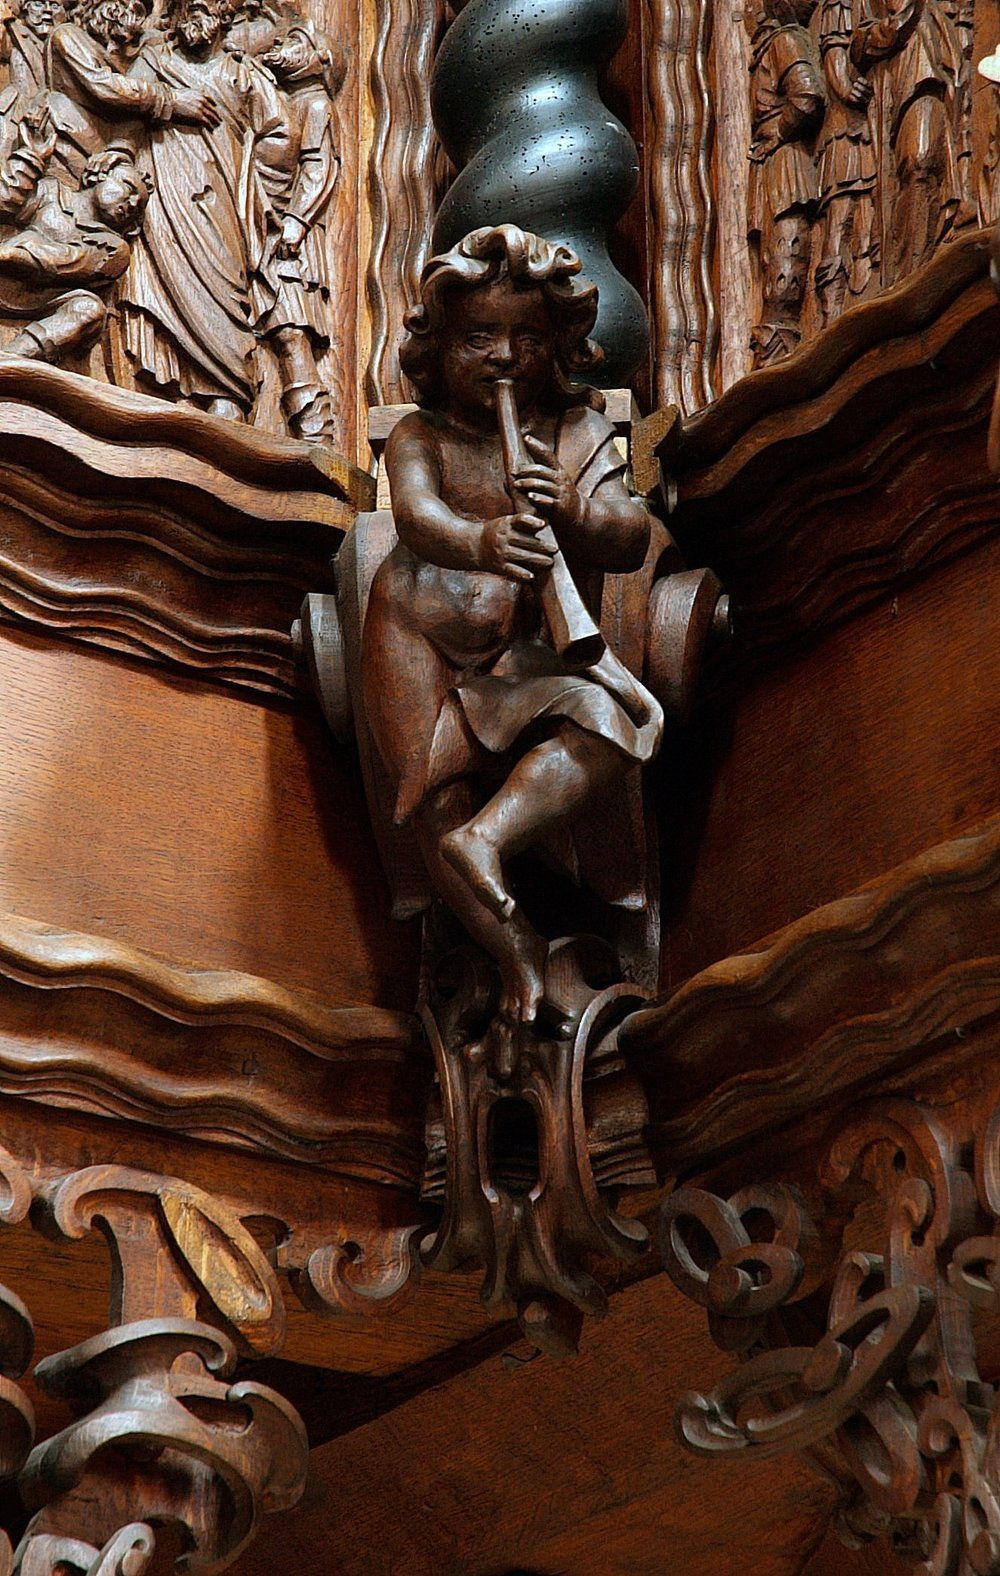 A cornetto-playing putto on the pulpit in Sorø, Sjælland, Denmark.